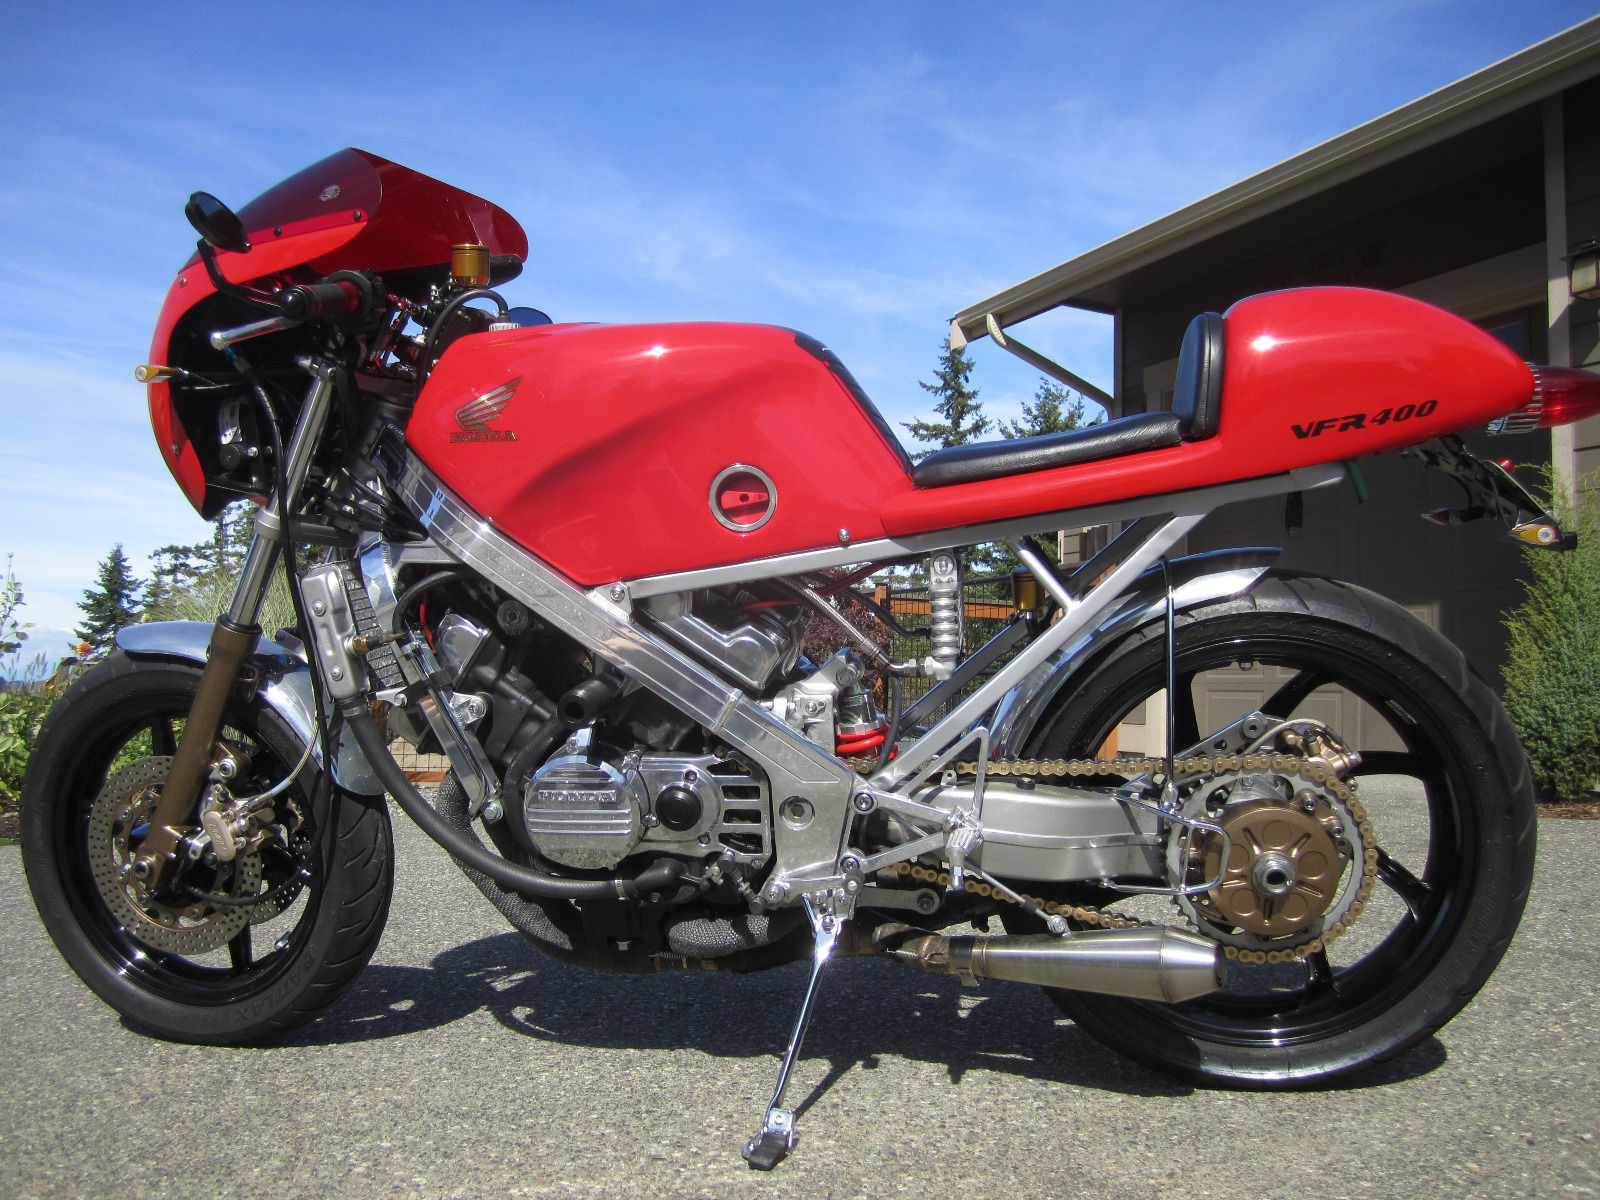 Honda vfr r nc cafe racer for sale